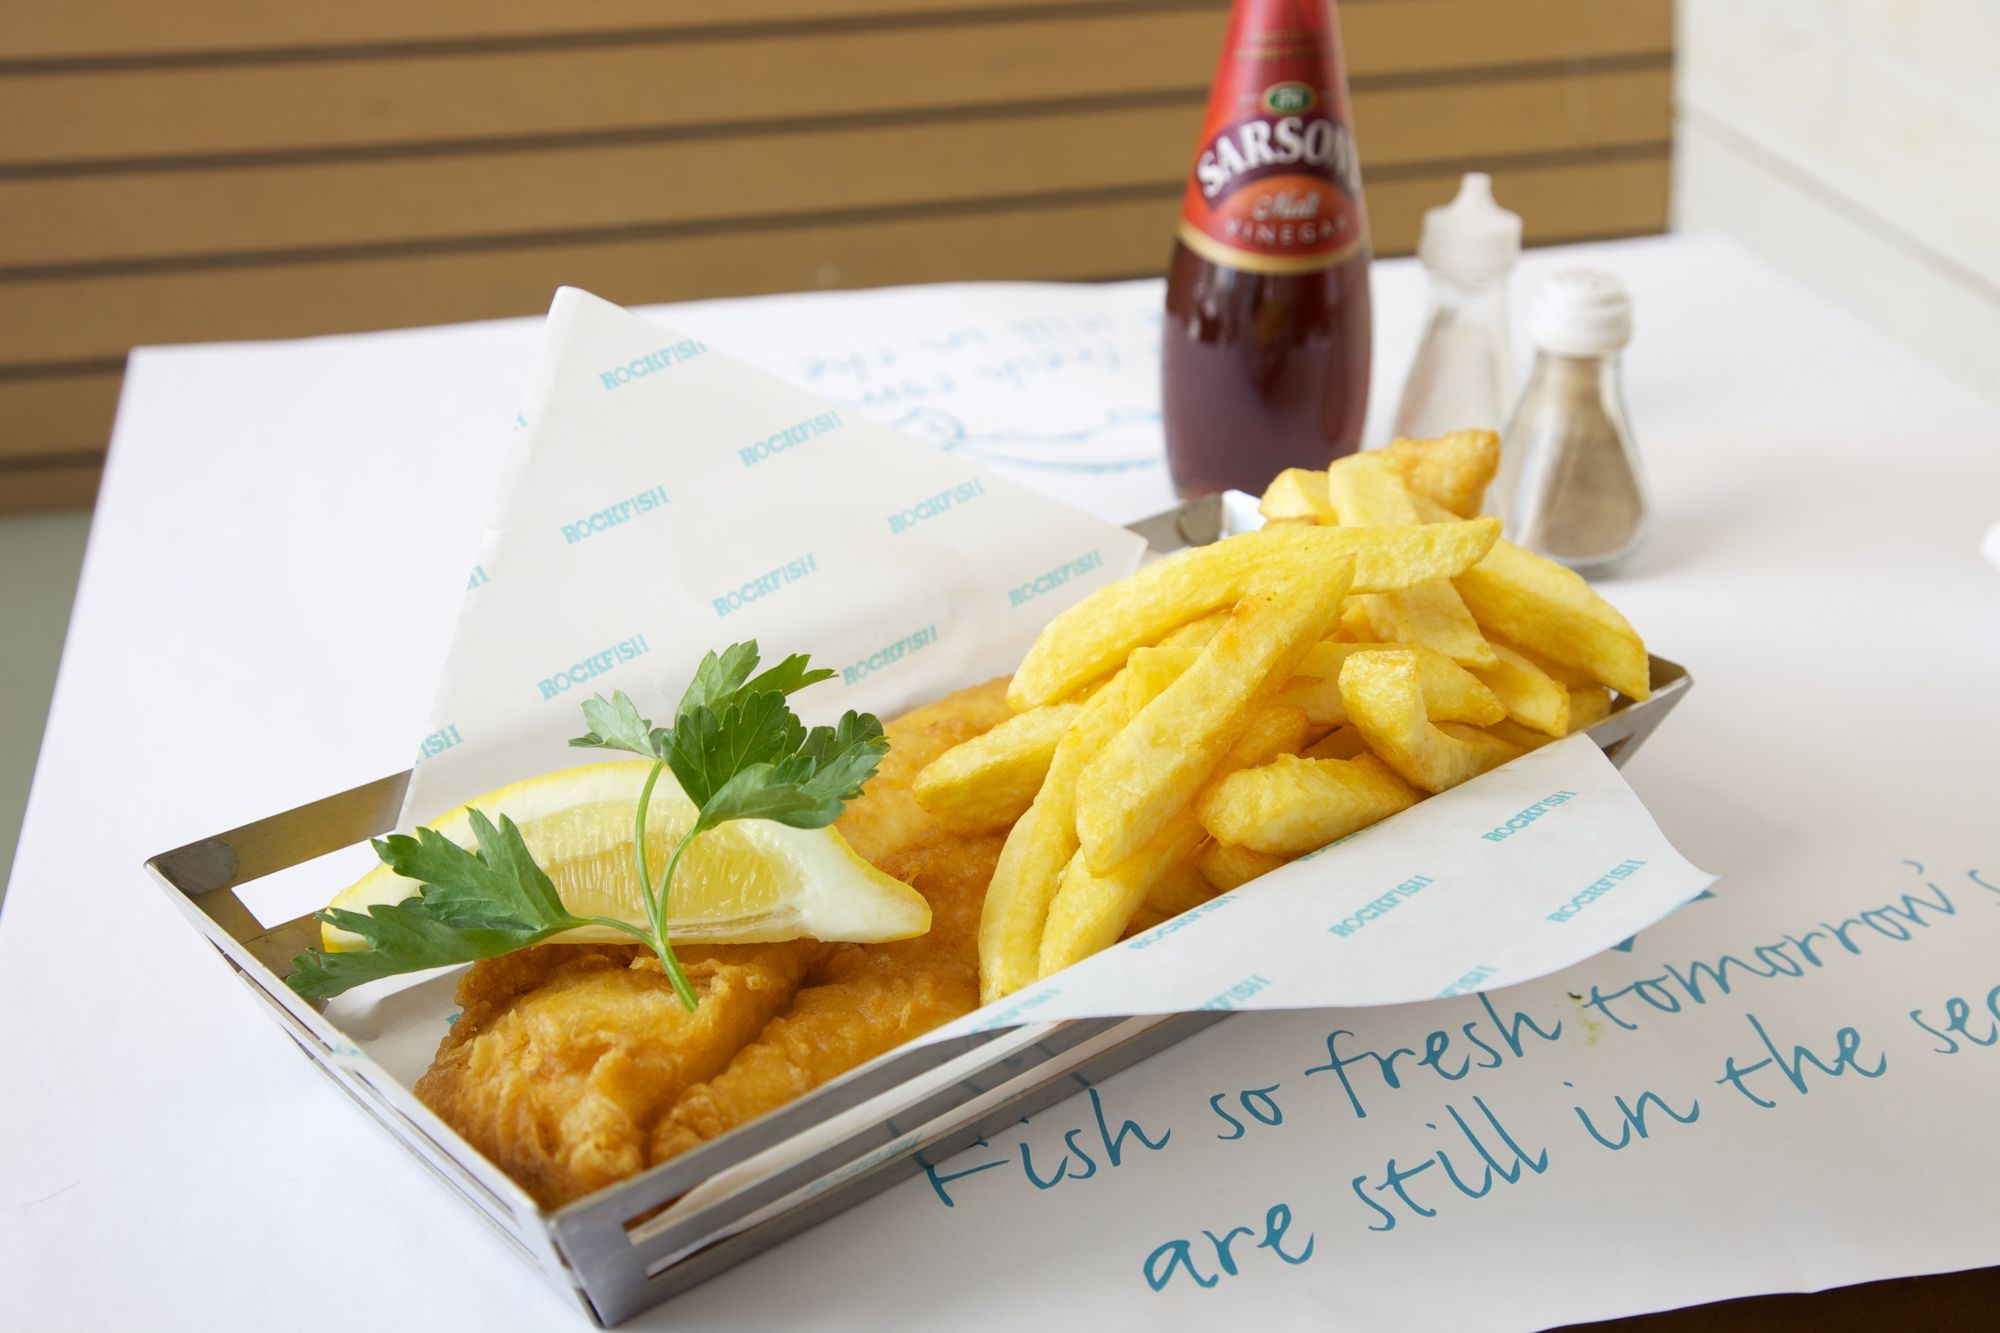 Rockfish; Fresh Fish & Chips